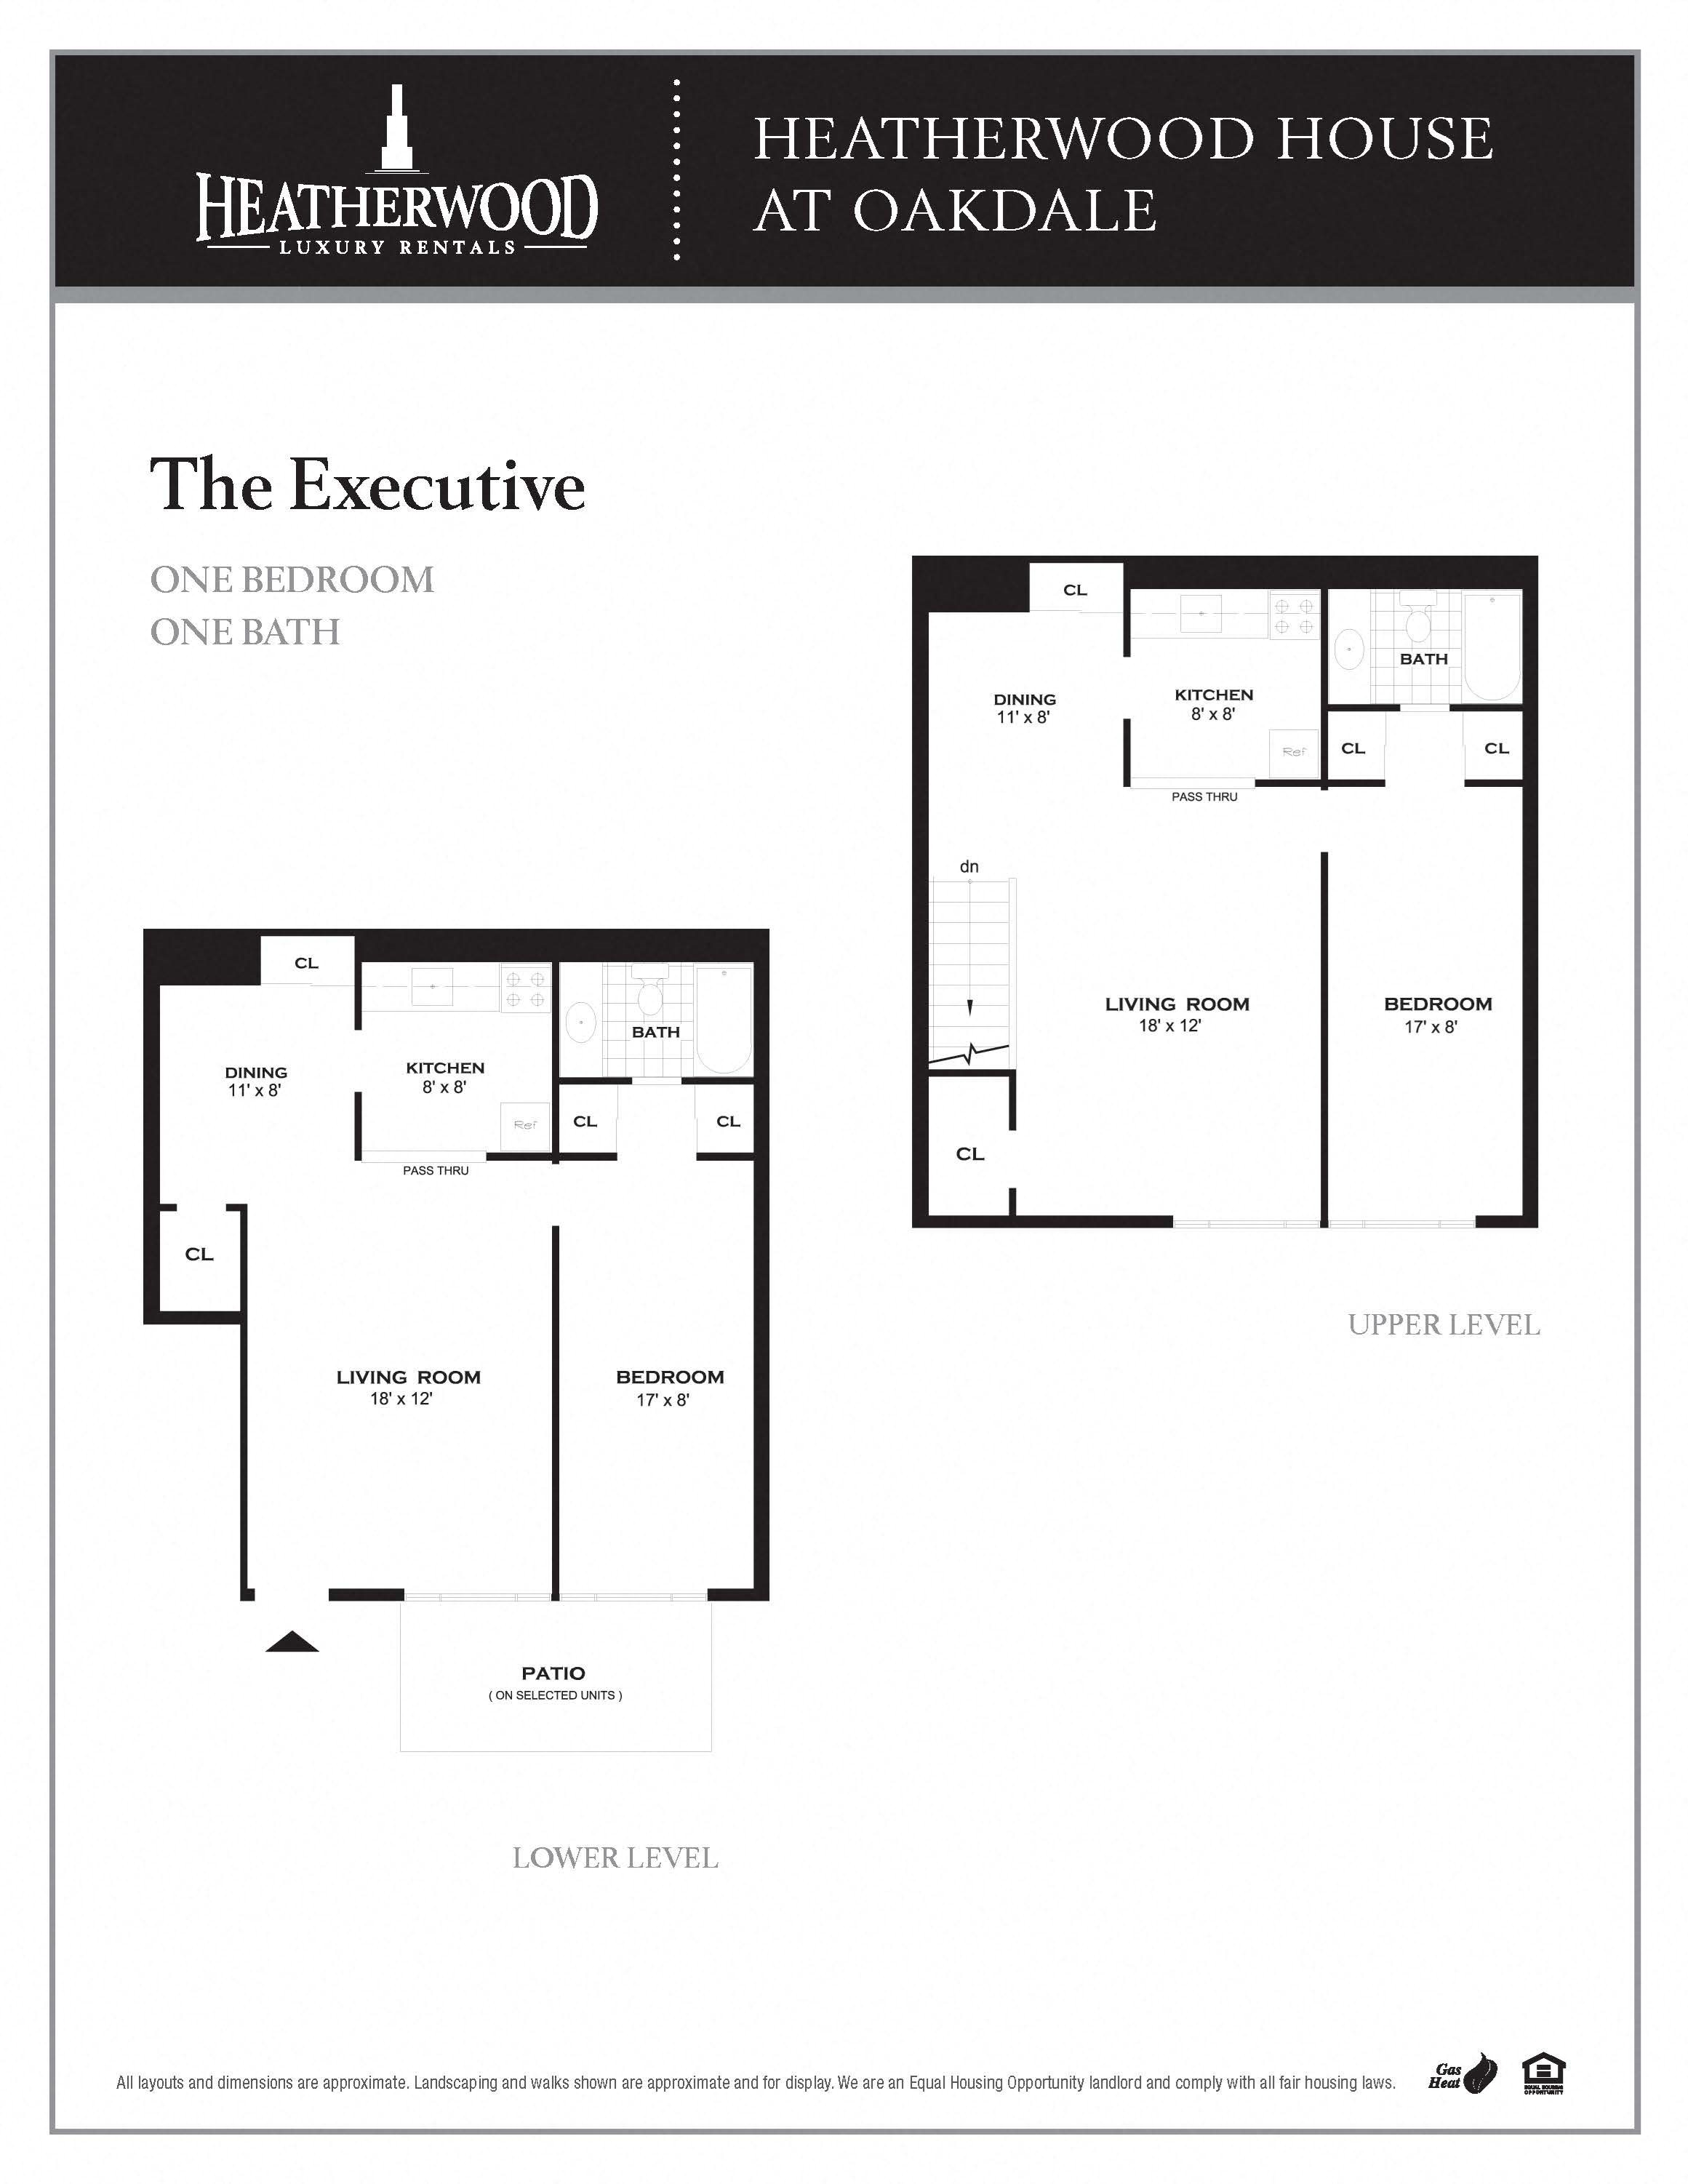 The Executive Floorplan at HH Oakdale